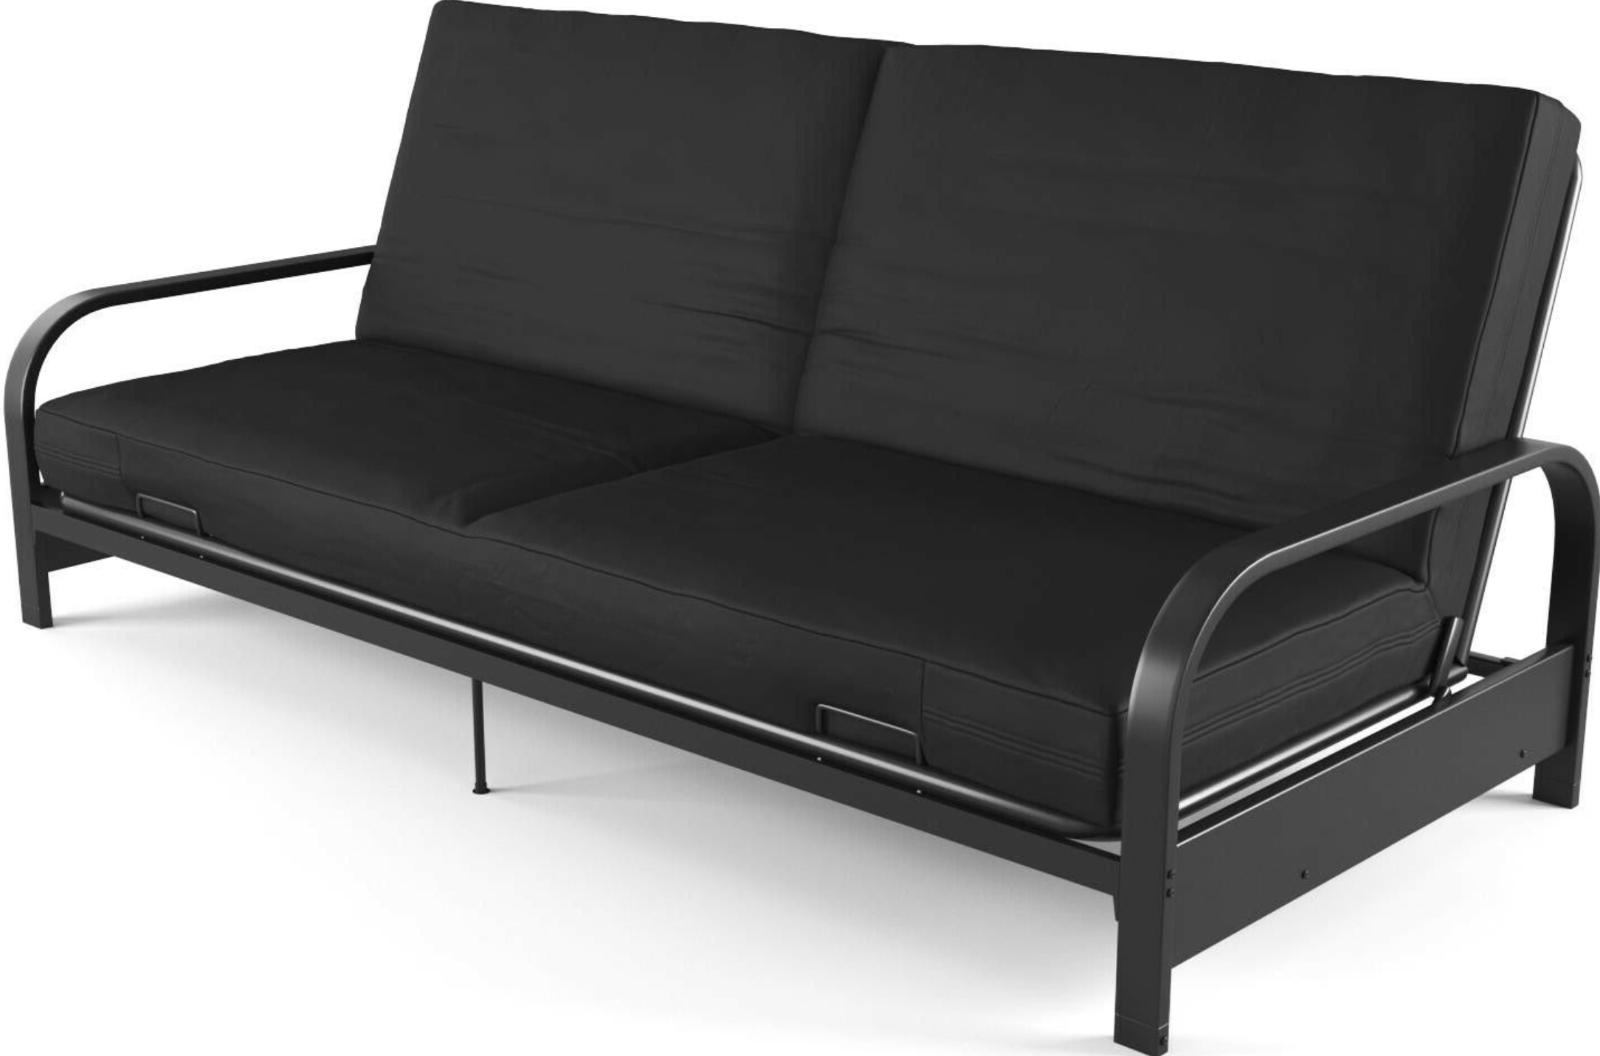 "Futon Sleeper Sofa Couch Bed Convertible Frame 6"" Mattress L"